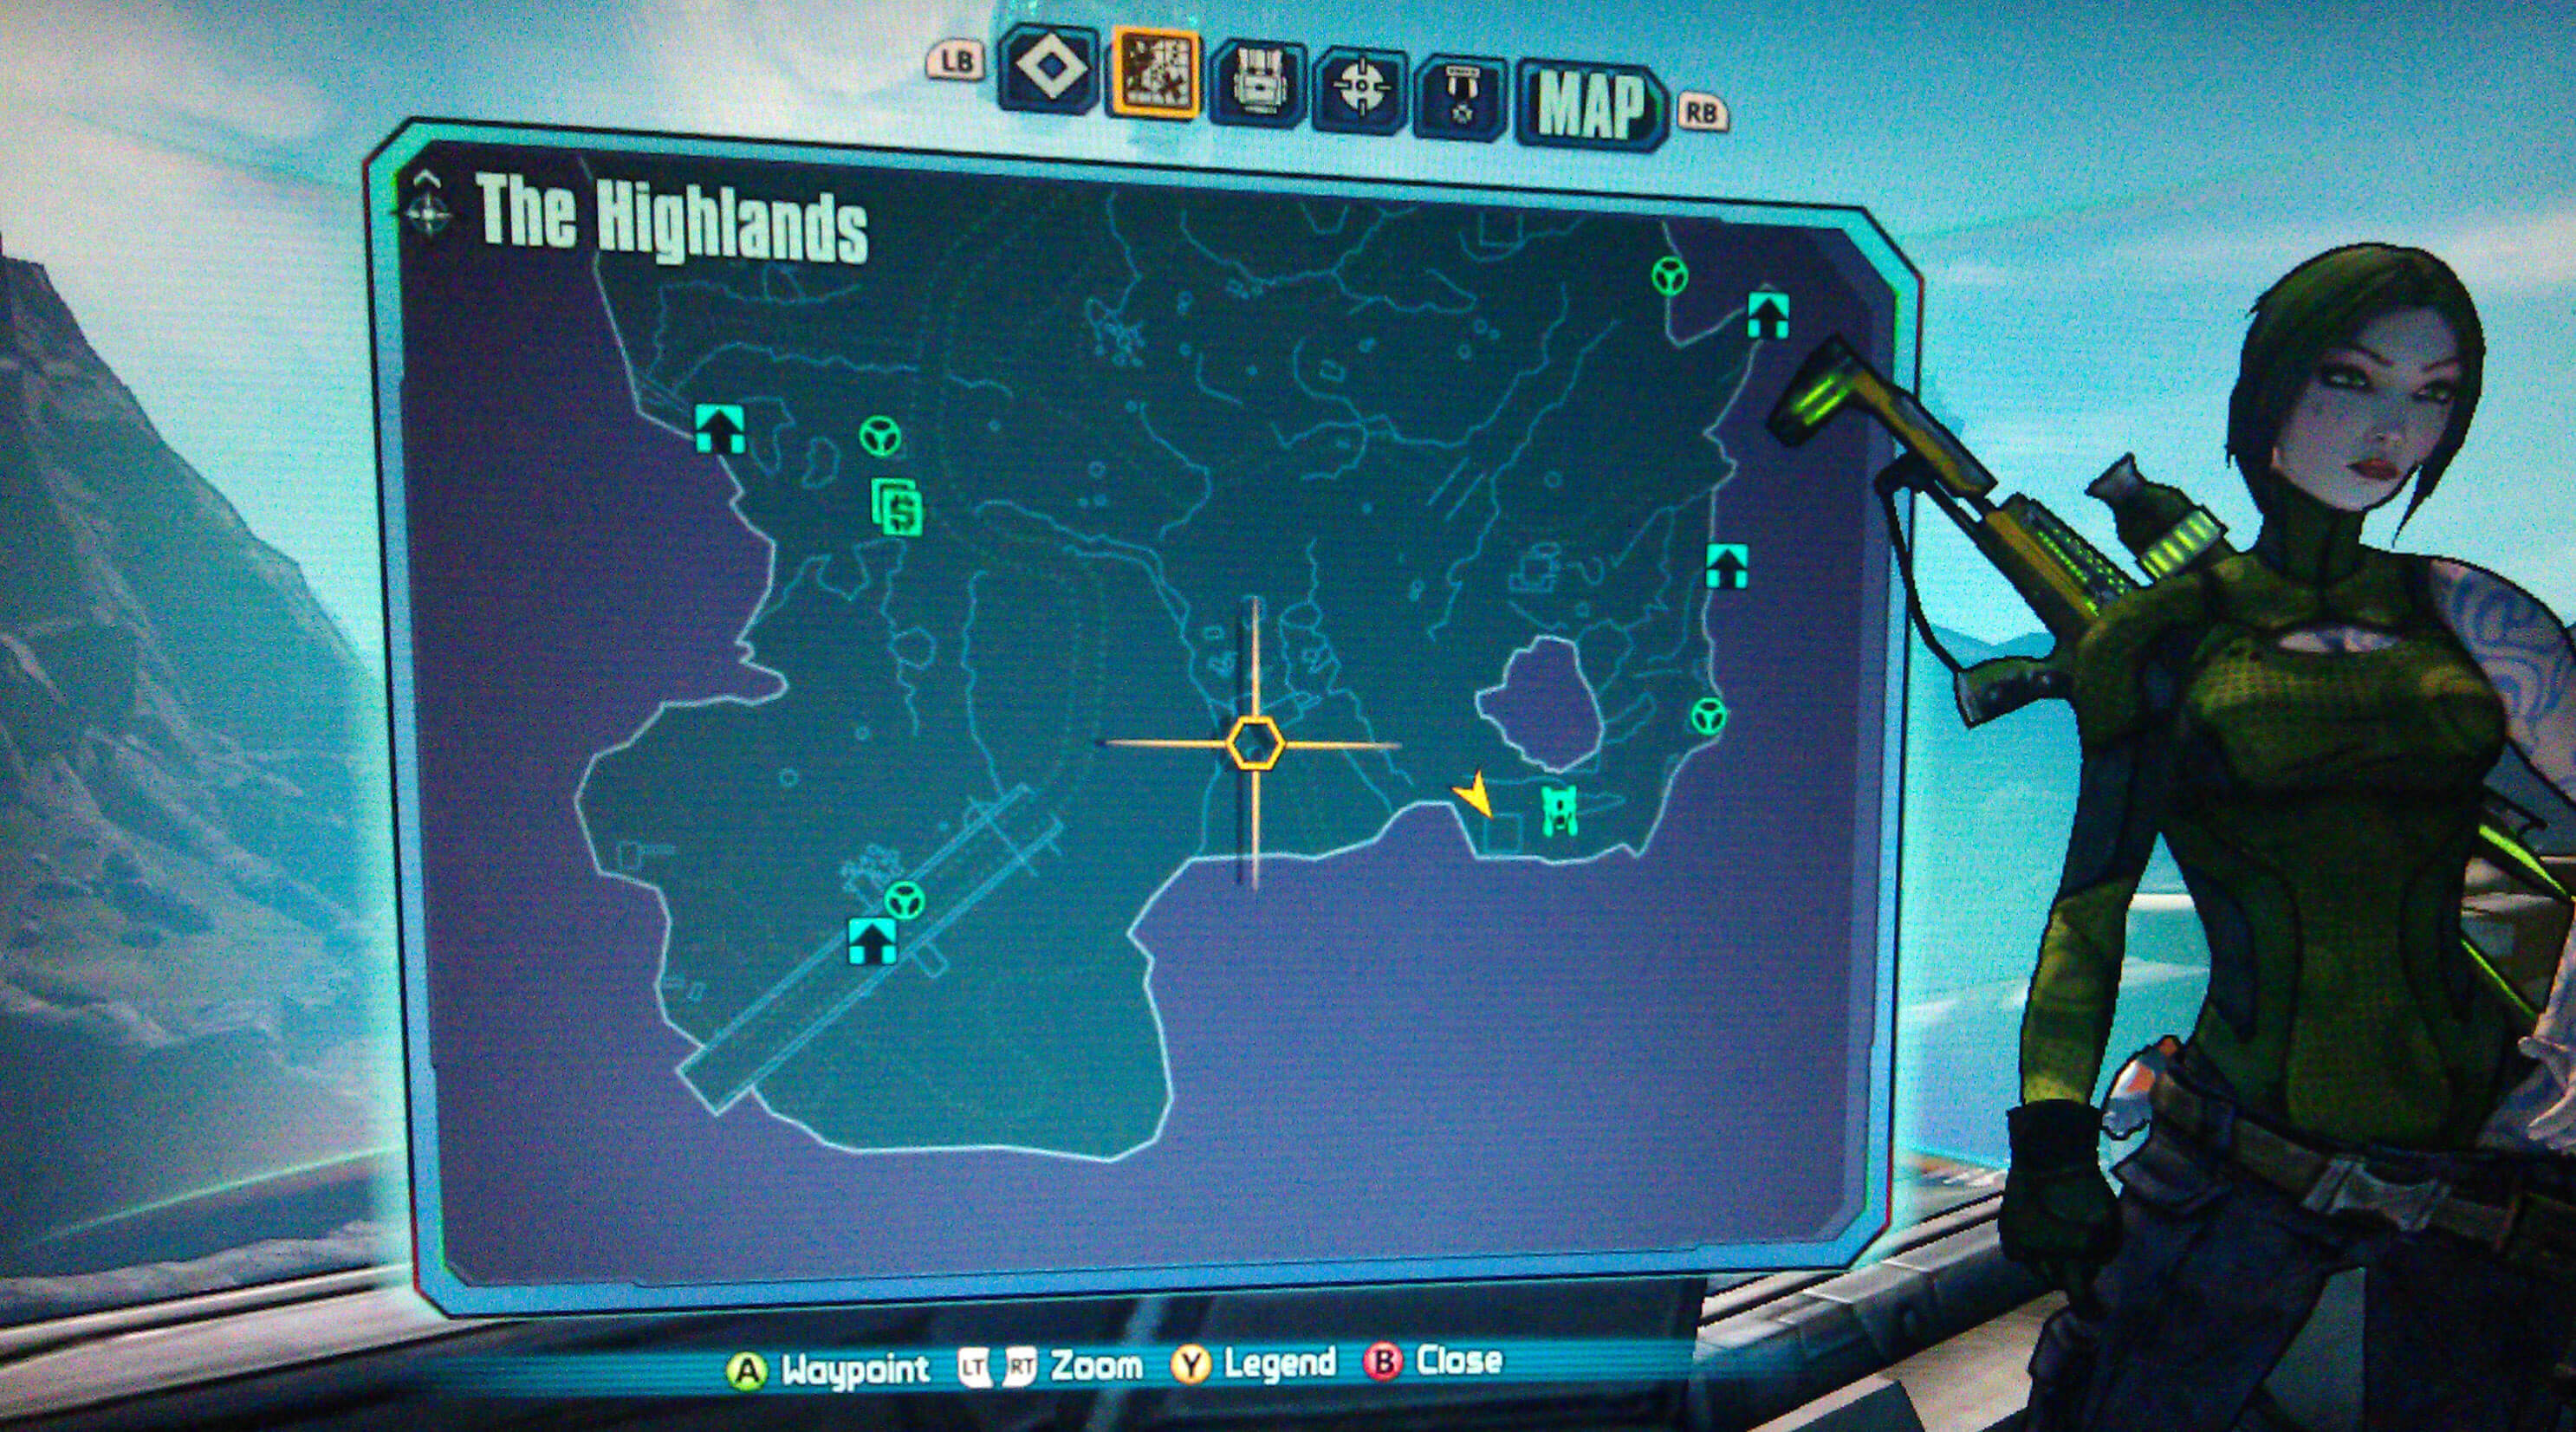 Borderlands 2 The Highlands Walkthrough - VGFAQ Borderlands 2 Walkthrough